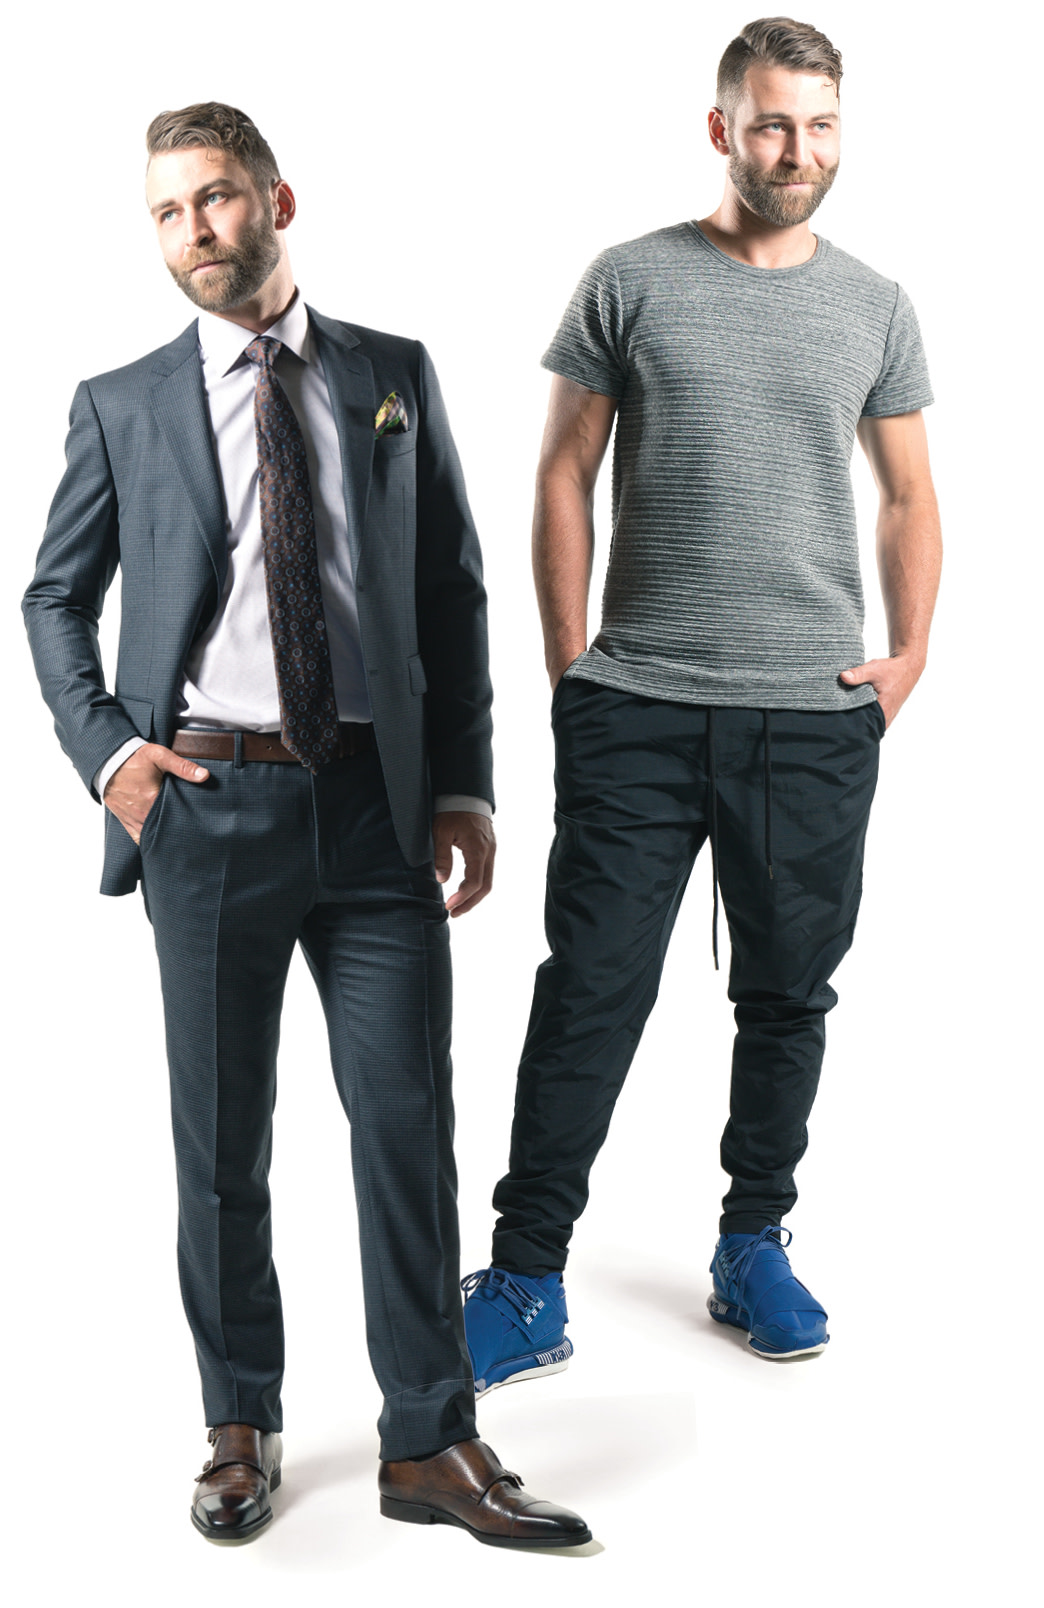 0726e3f5 There Is Such a Thing as Men's Fashion in Portland | Portland Monthly